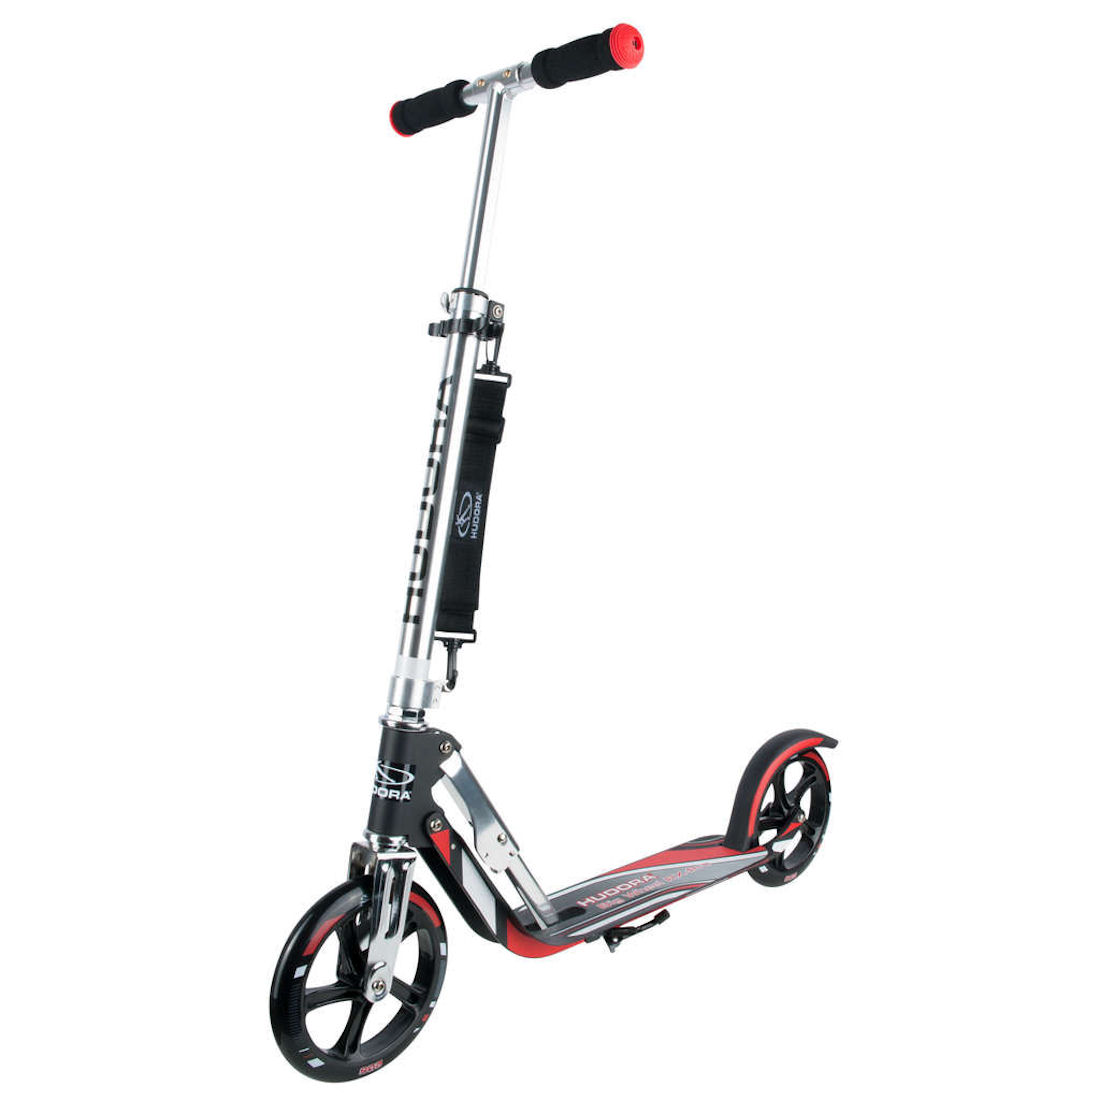 hudora big wheel 205 roller rx pro 205 scooter rot schwarz ebay. Black Bedroom Furniture Sets. Home Design Ideas